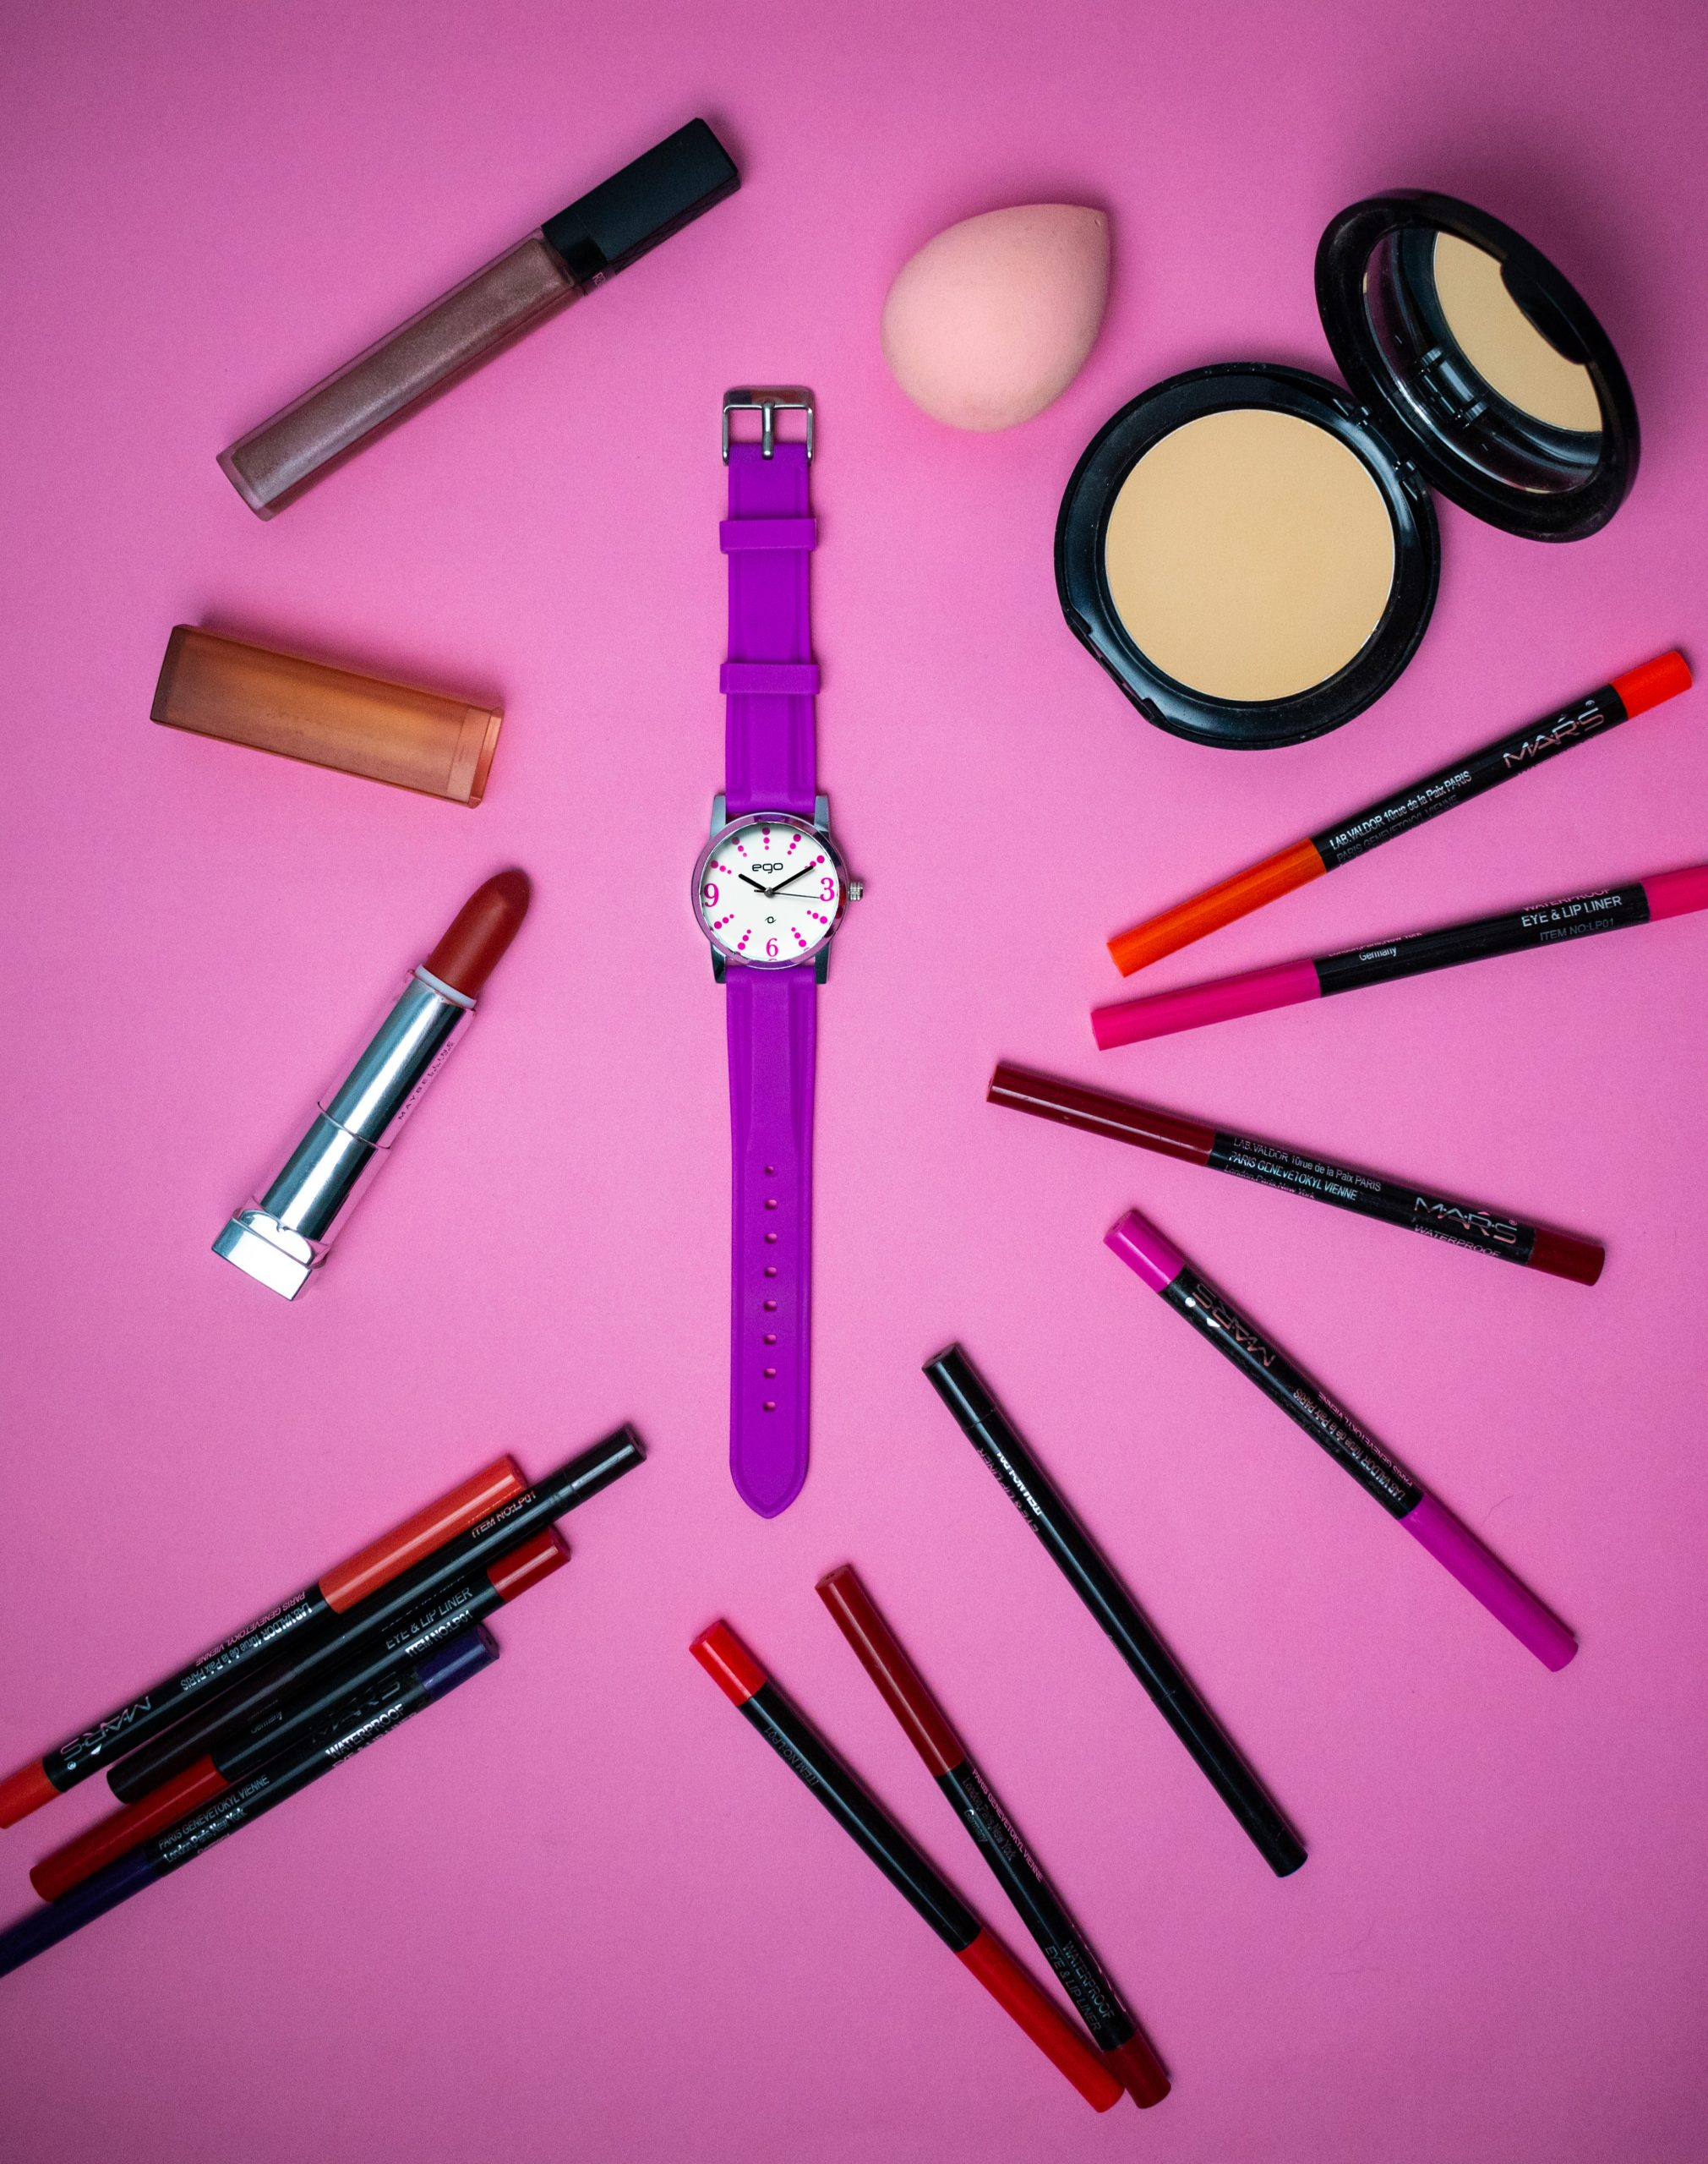 A wrist watch and cosmetic items